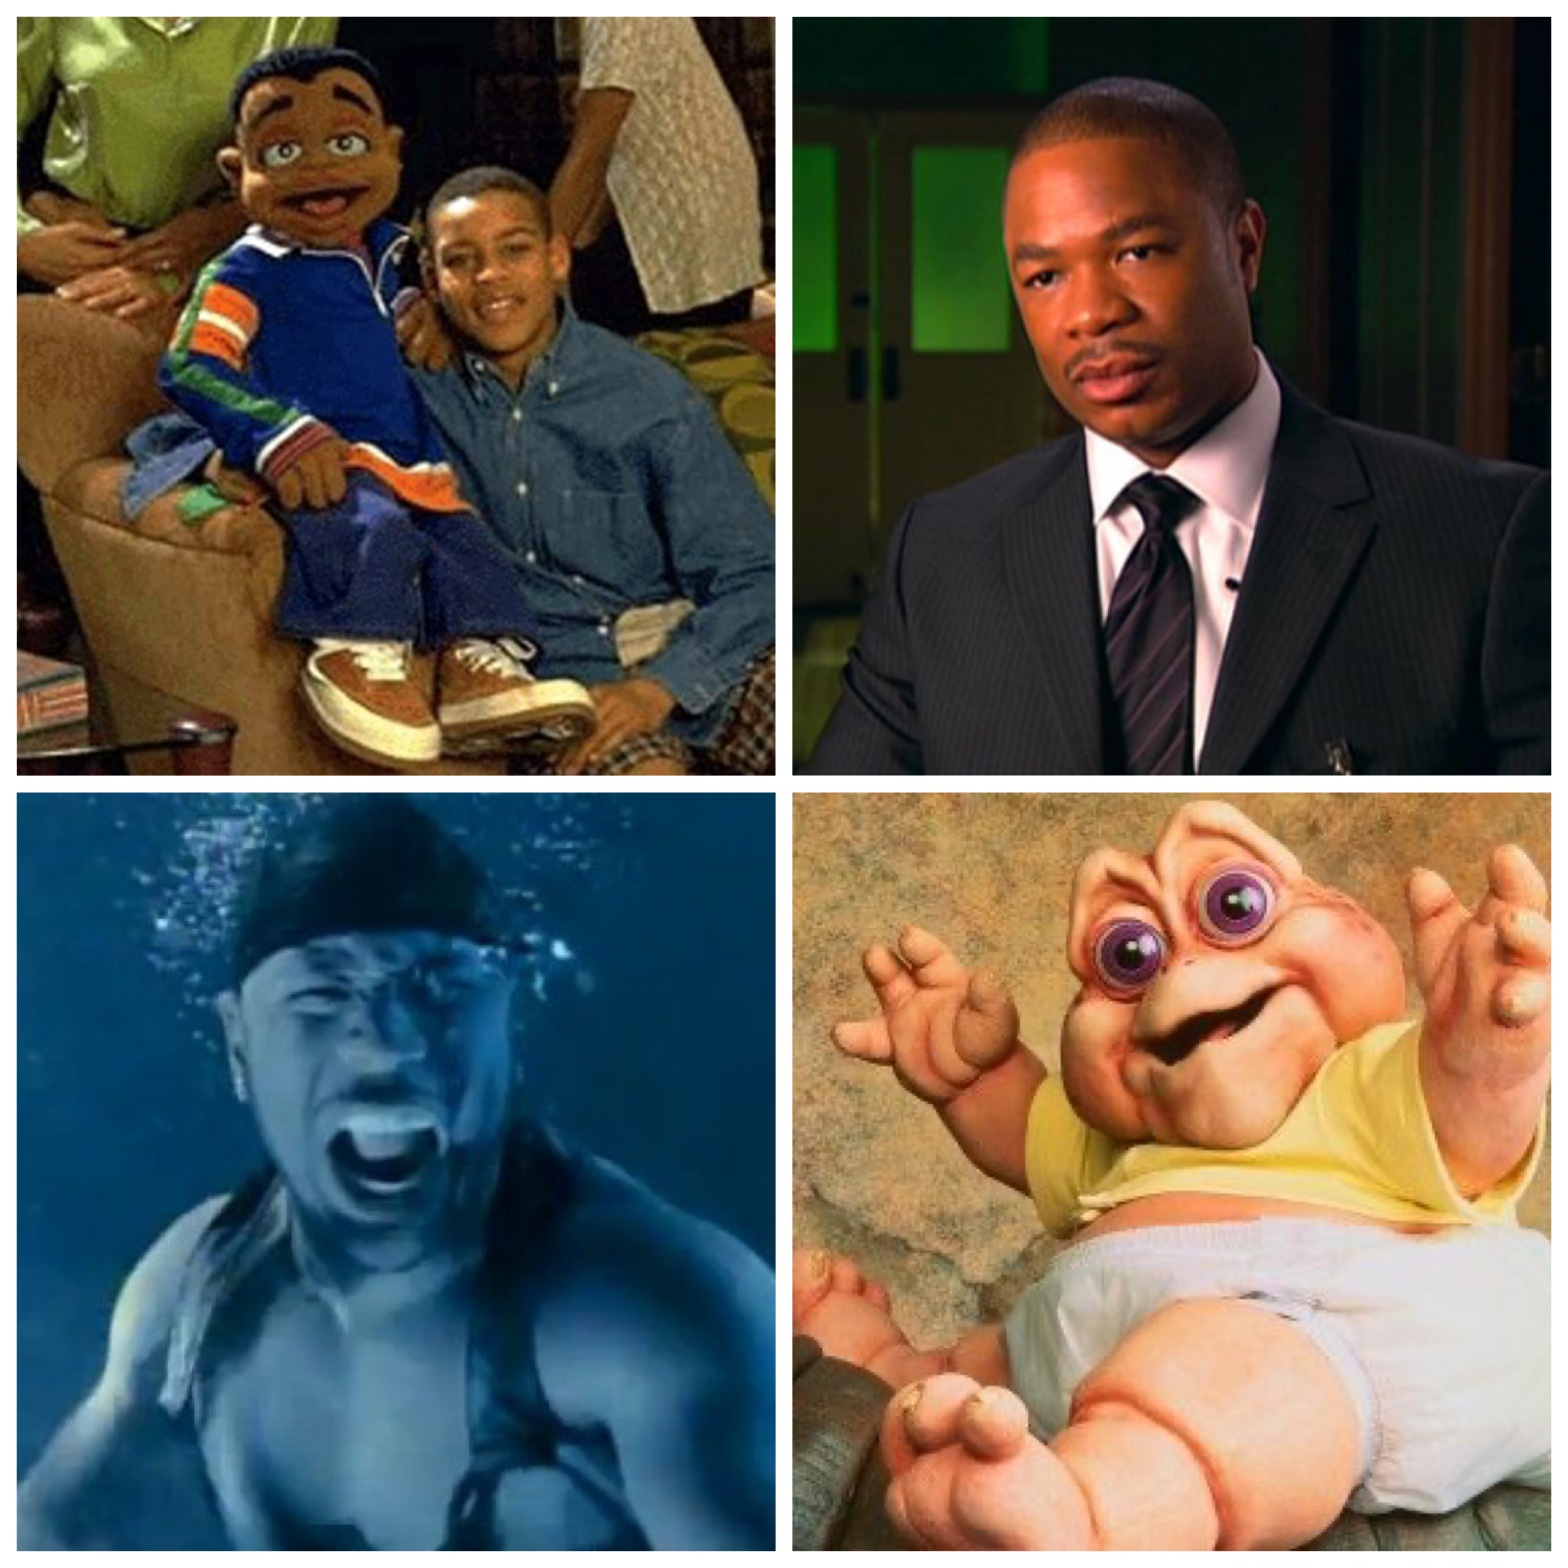 Cousin Skeeter. Xzibit. LL Cool J. The baby from Dinosaurs. This will all make sense once you've listened to the first episode.